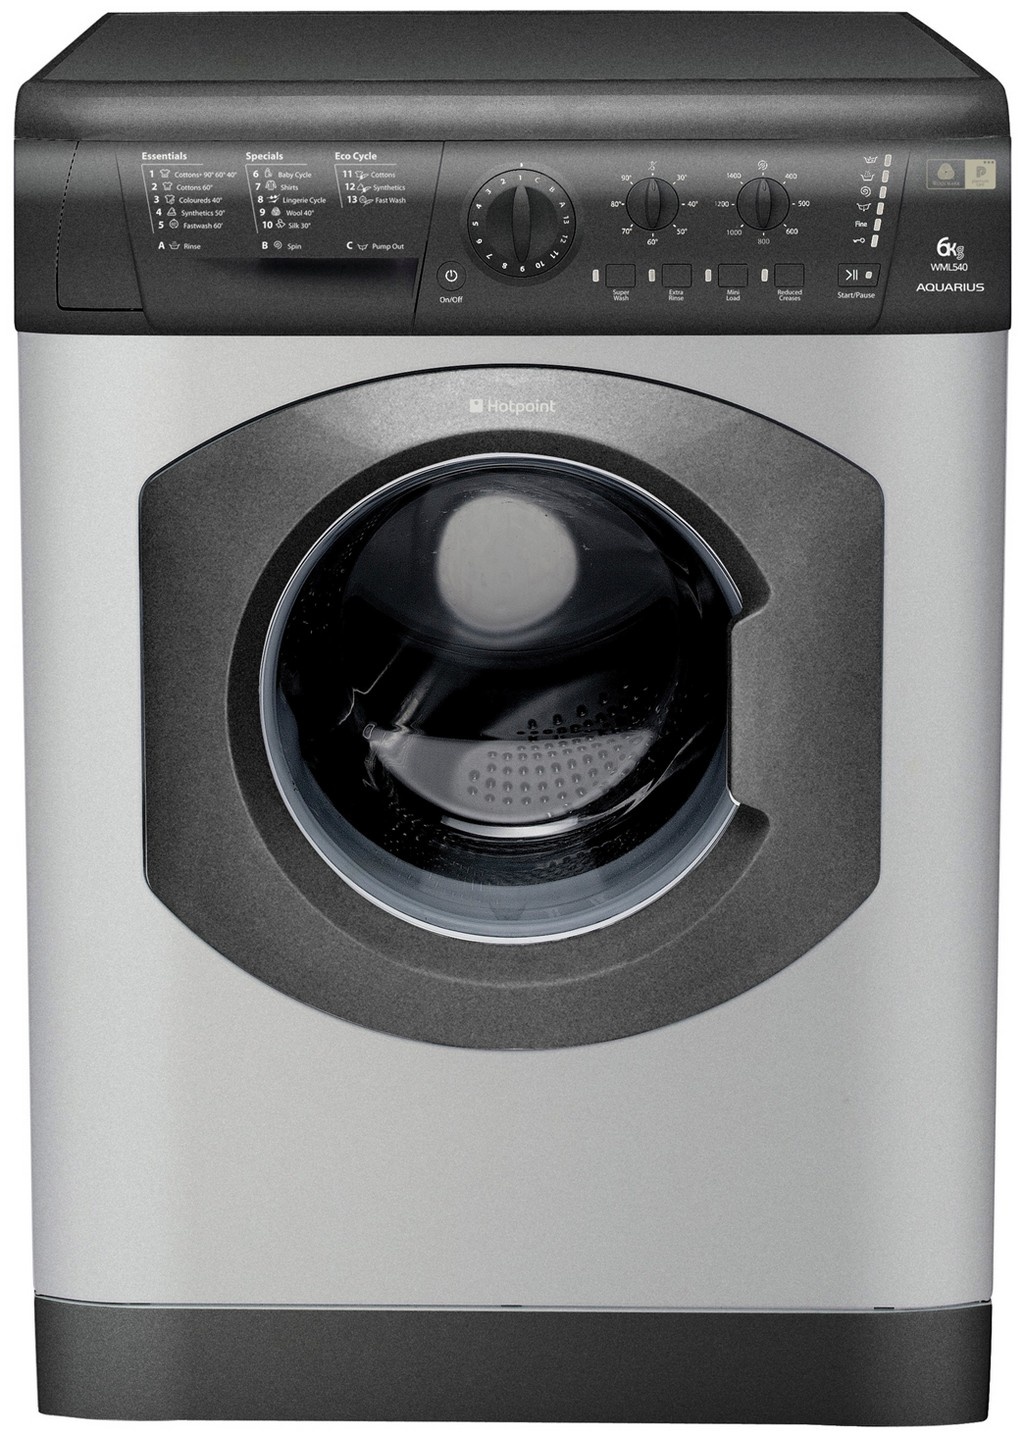 maytag neptune washer, fisher and paykel washing machine, best washing machine brand